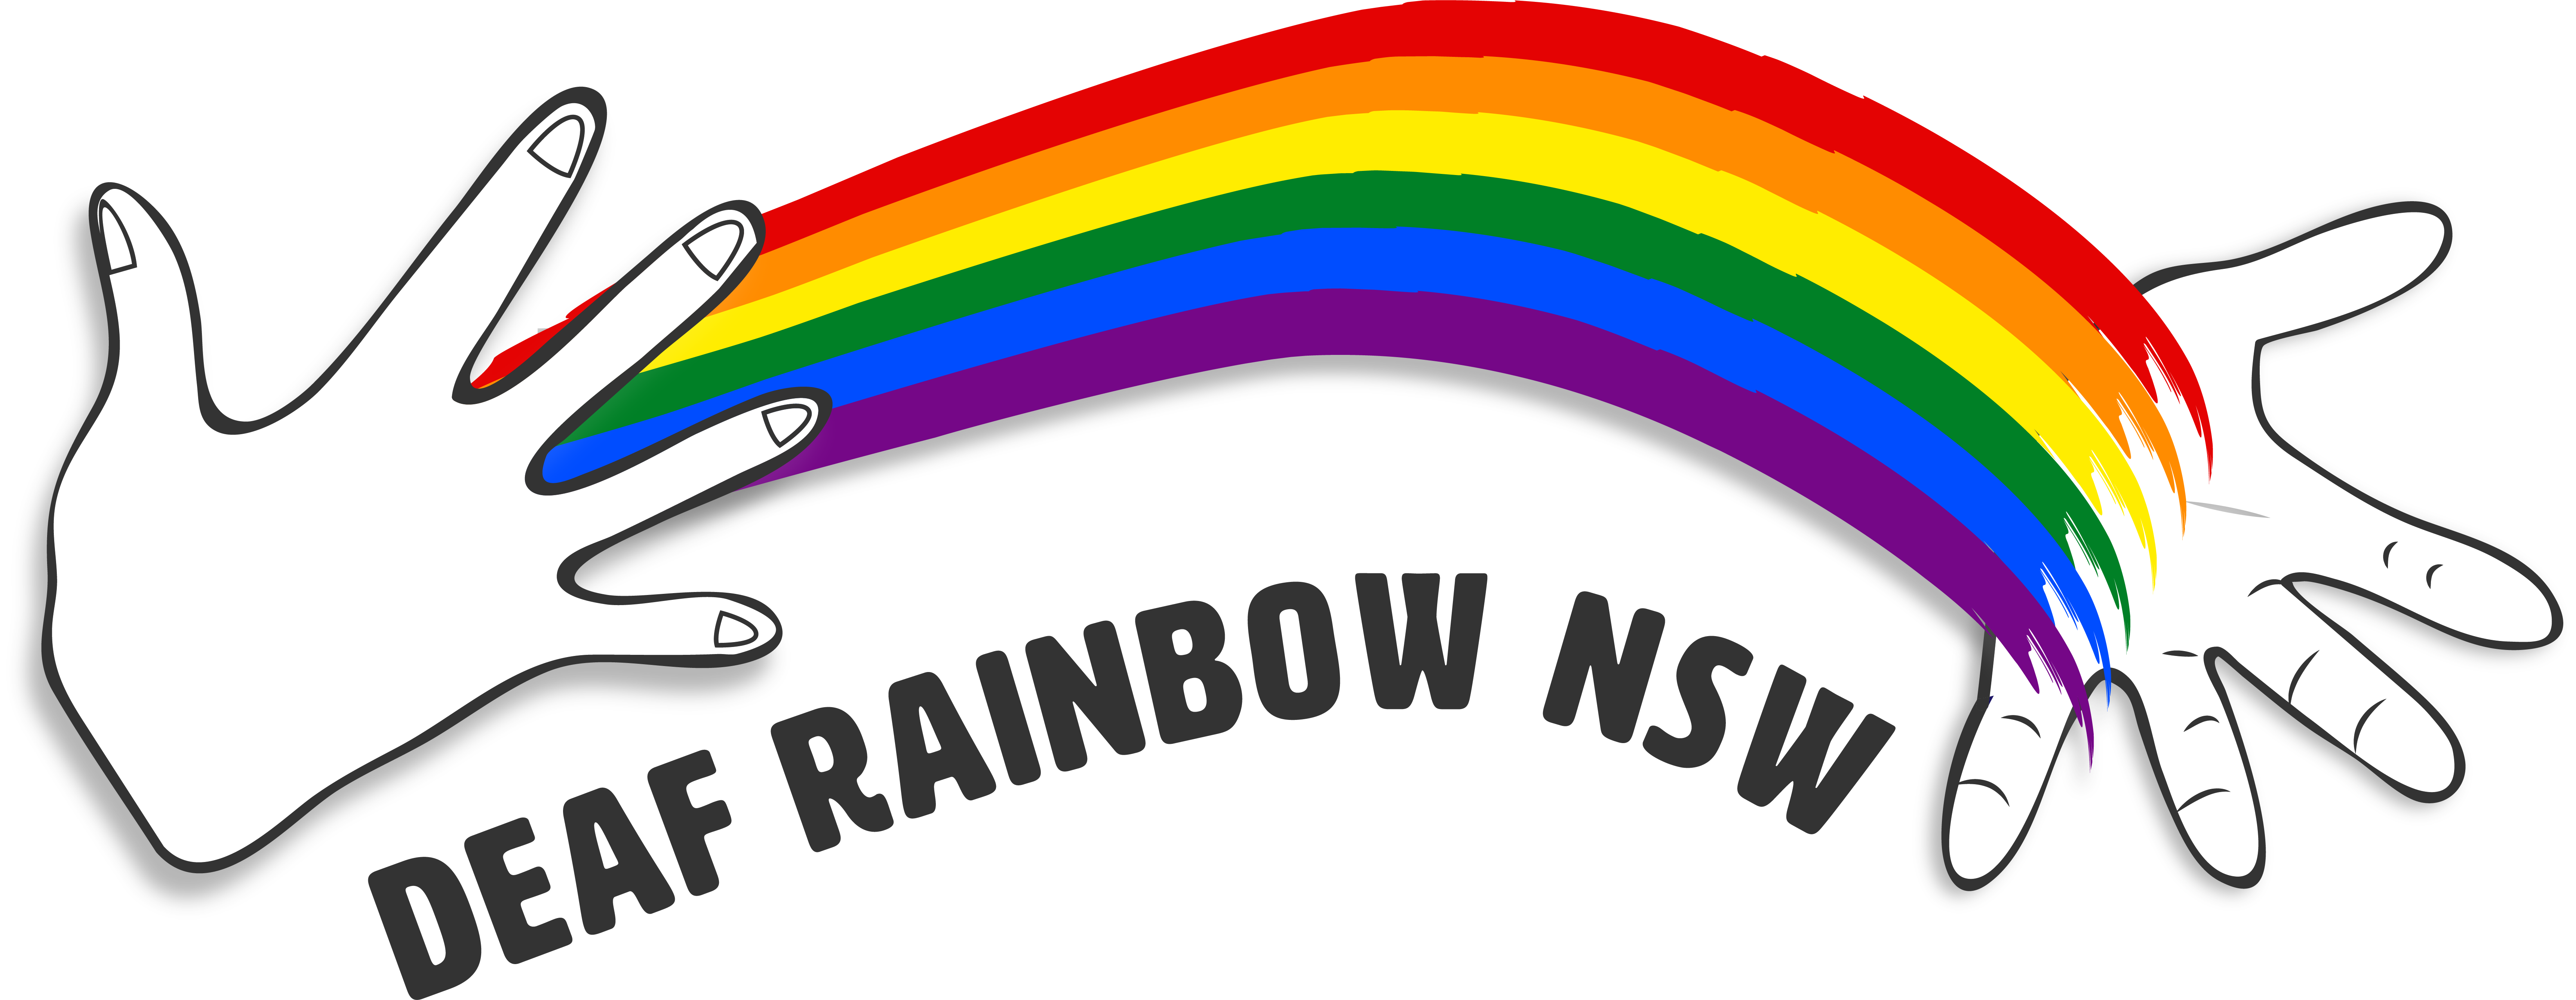 Deaf Rainbow NSW